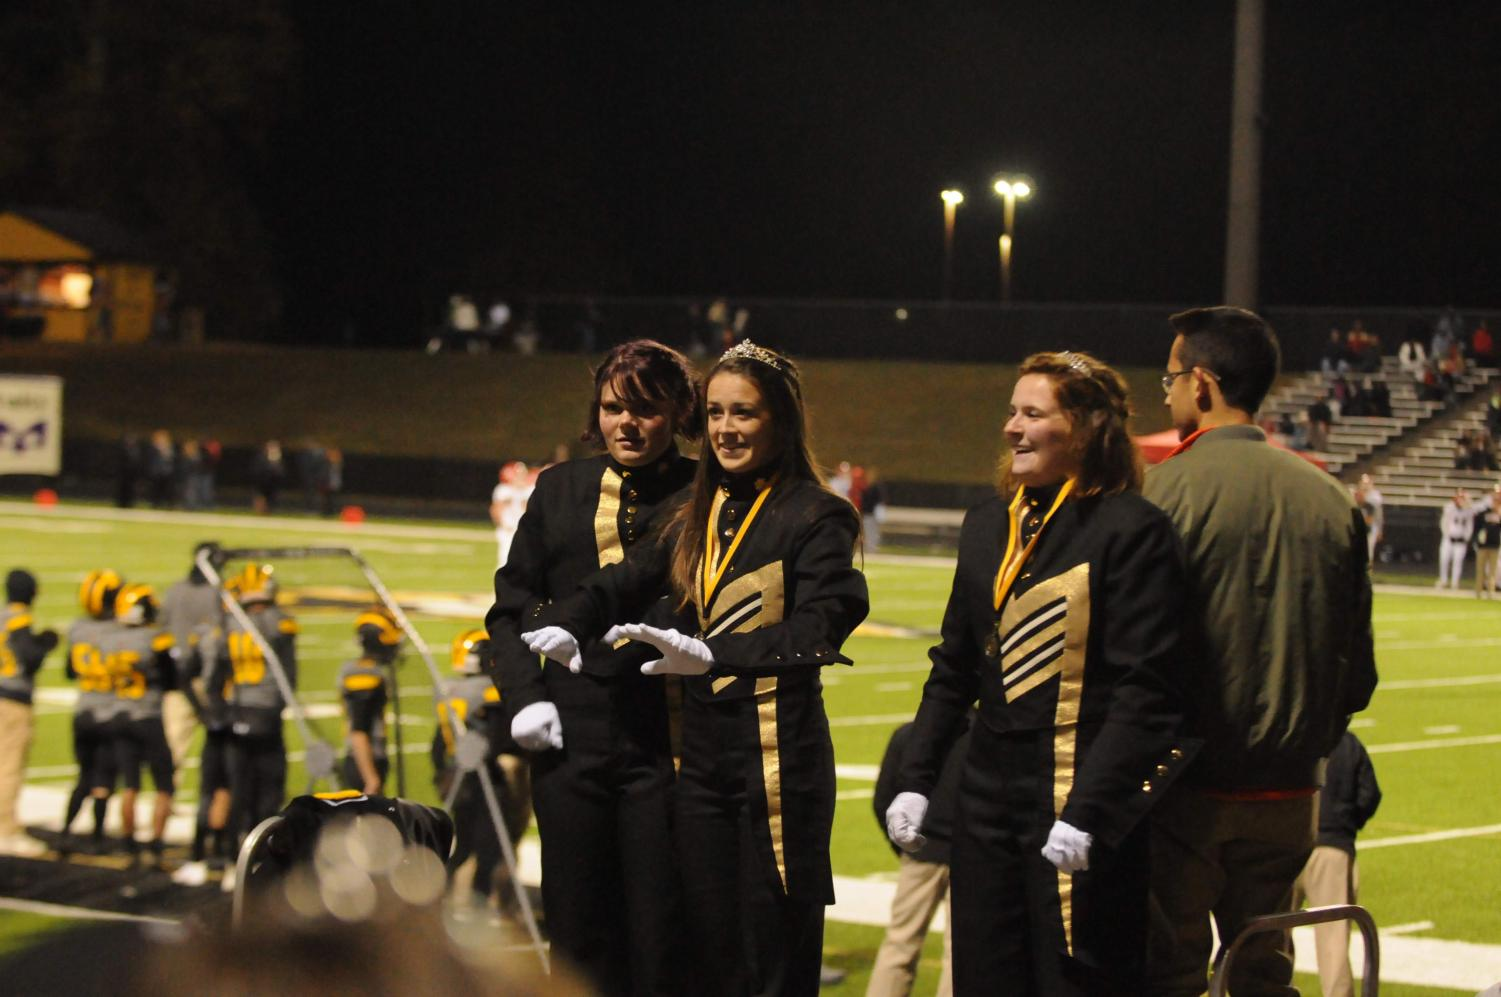 Drum majors junior Catie Webb and seniors Cassie Meyers and Madison Joy conduct the band at the final home game of the season against Allatoona High School.  It was the last marching band performance conducted by Myers and Joy.